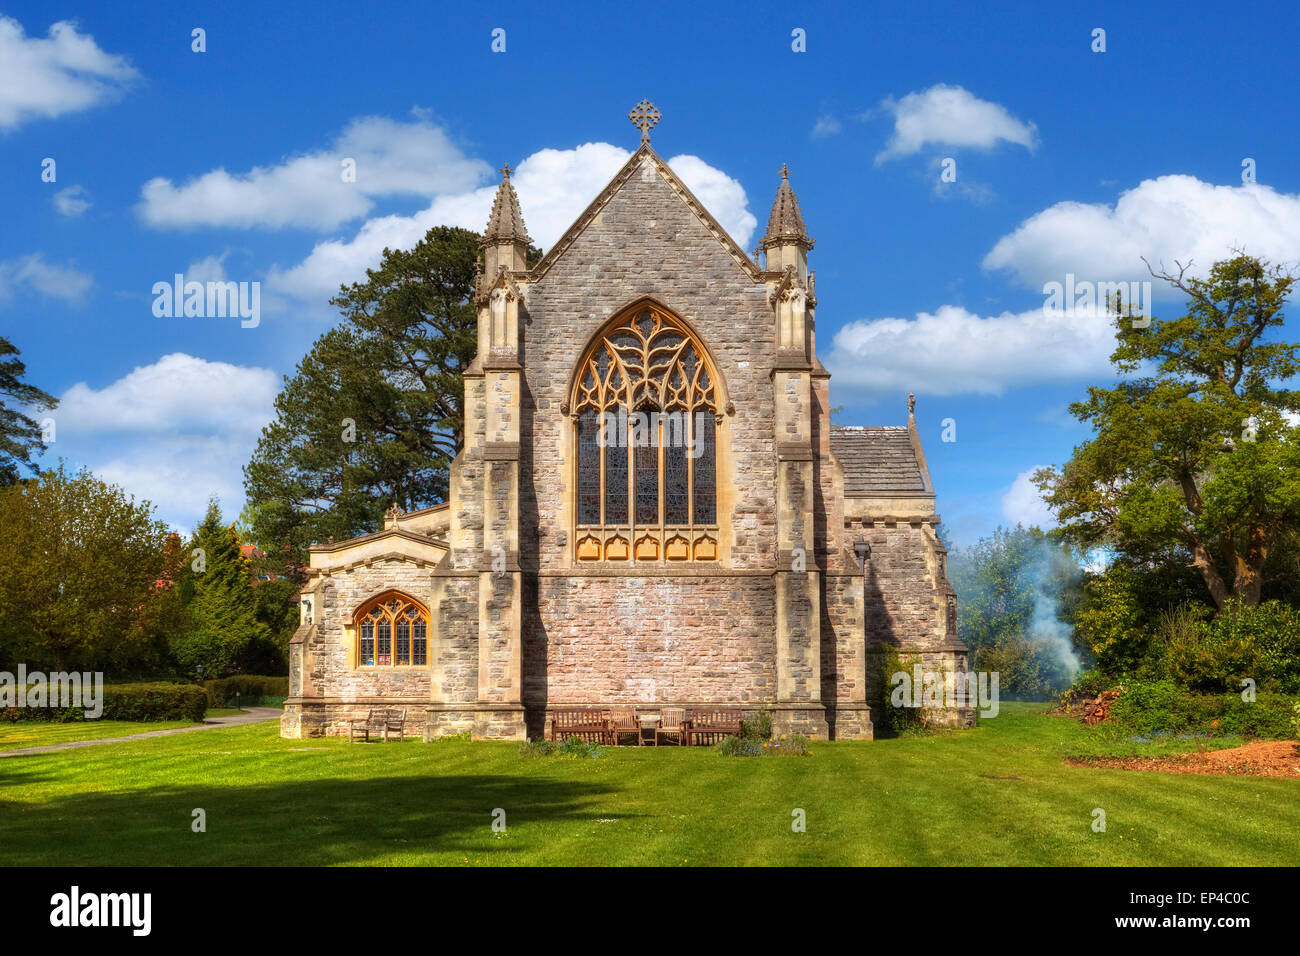 St Saviour church, Brockenhurst, Hampshire, England, UK - Stock Image